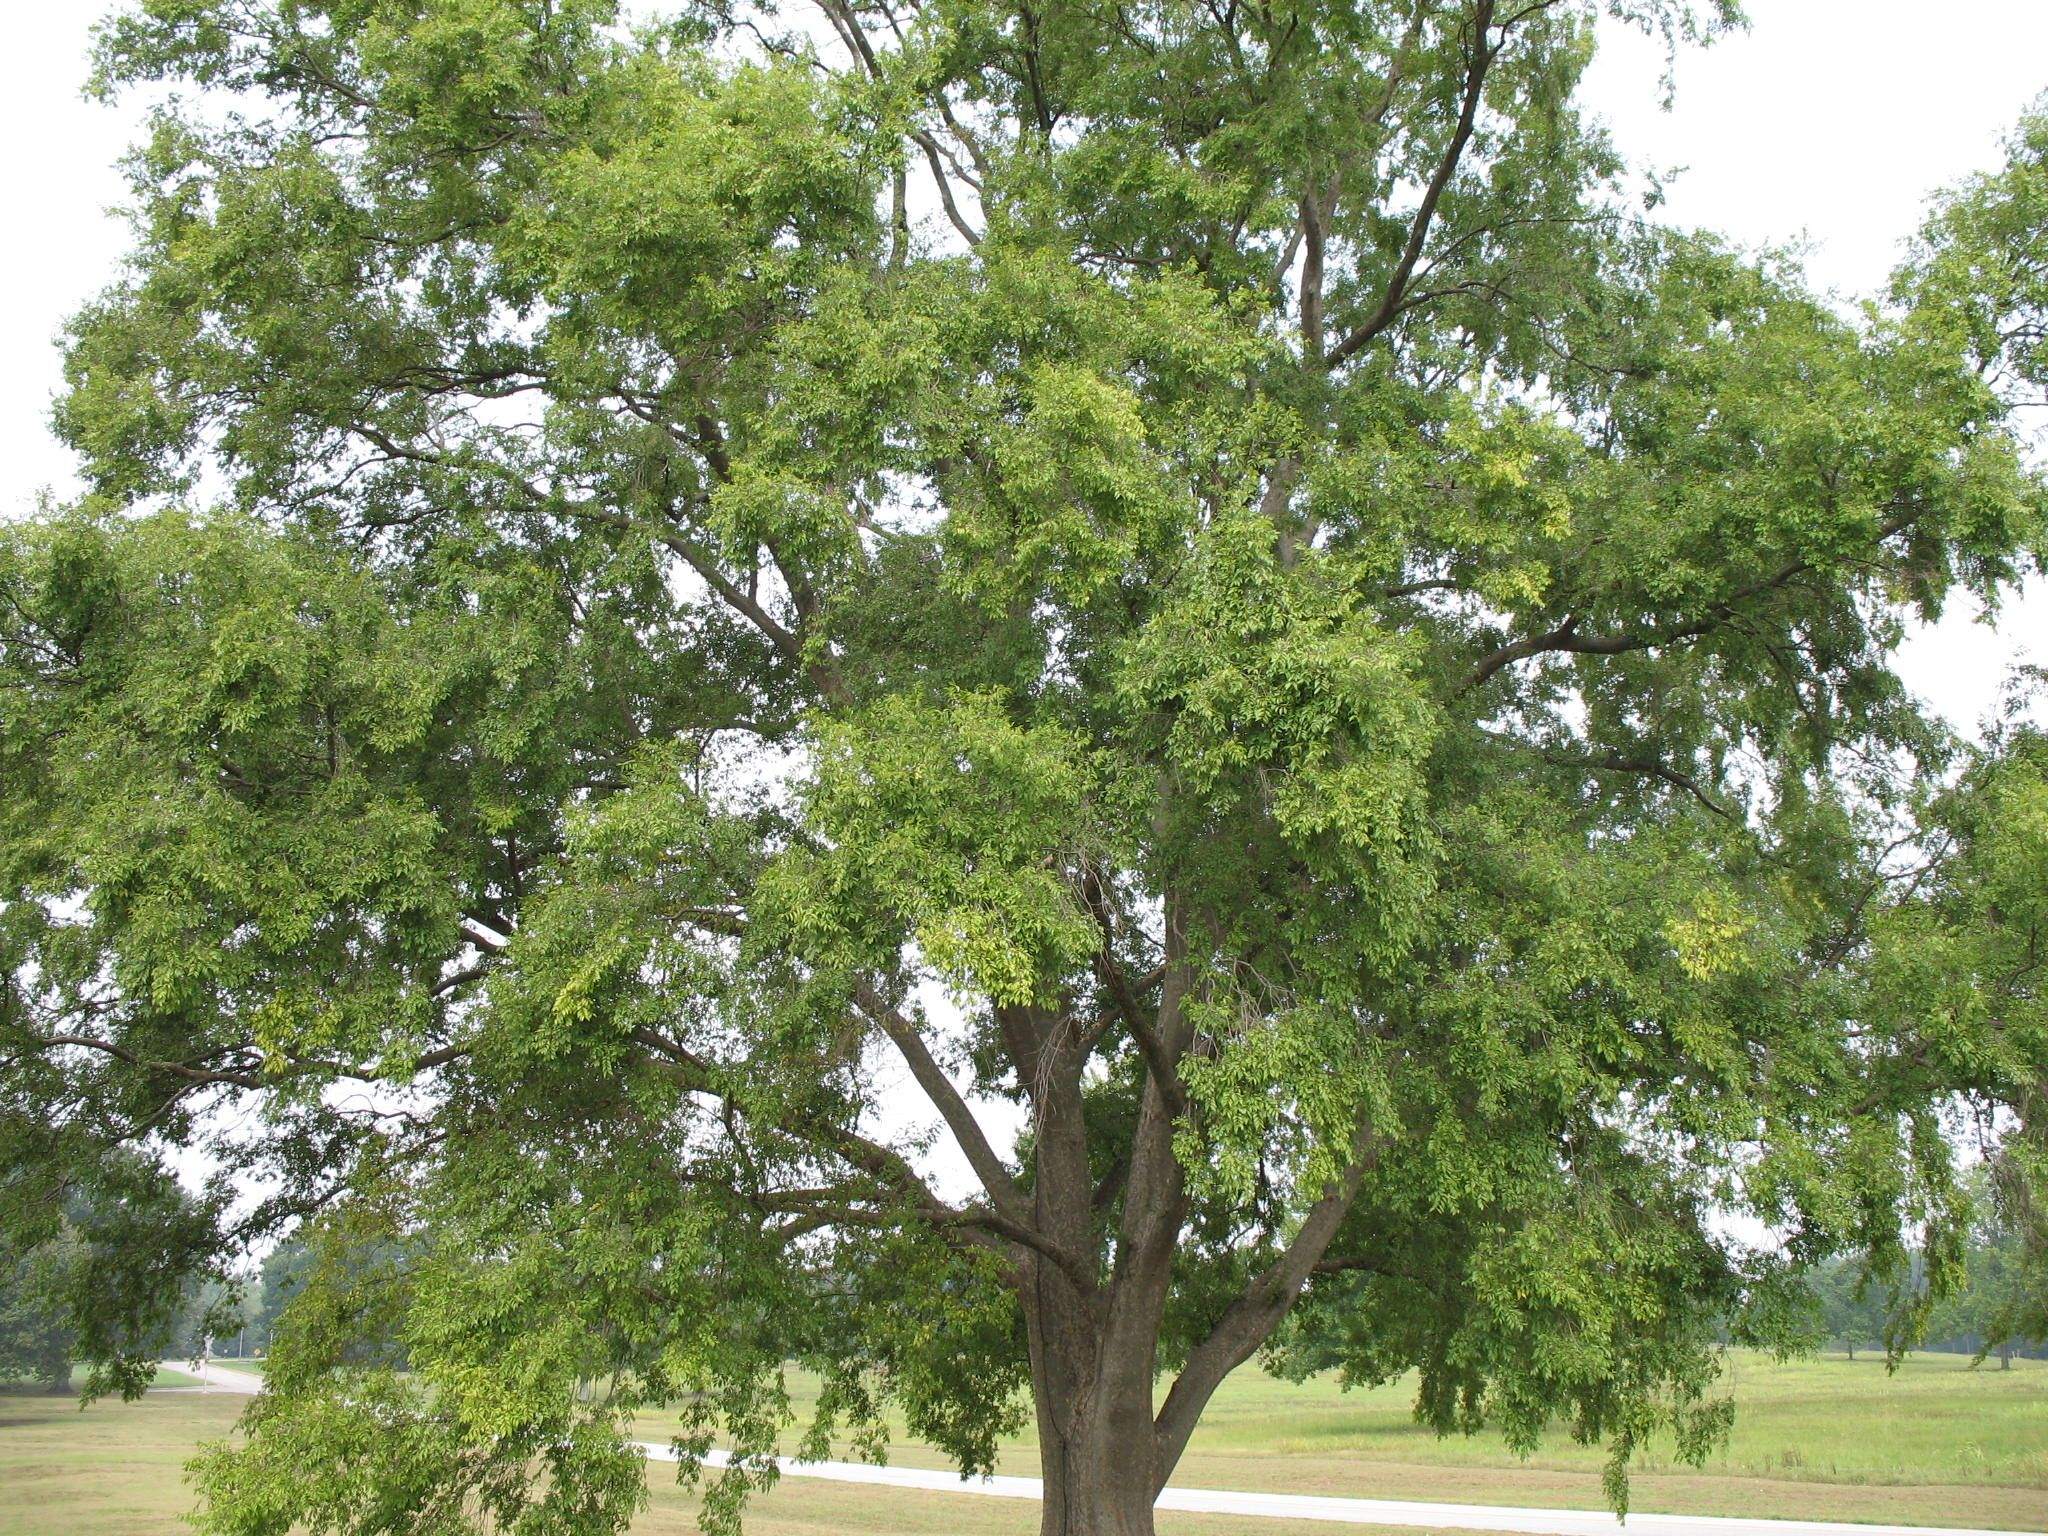 Ulmus Parvifolia Drake Ulmus Parvifolia Drake Onlineplantguide Com 9260 Fast Growing Shade Trees Shade Trees Fast Growing Trees